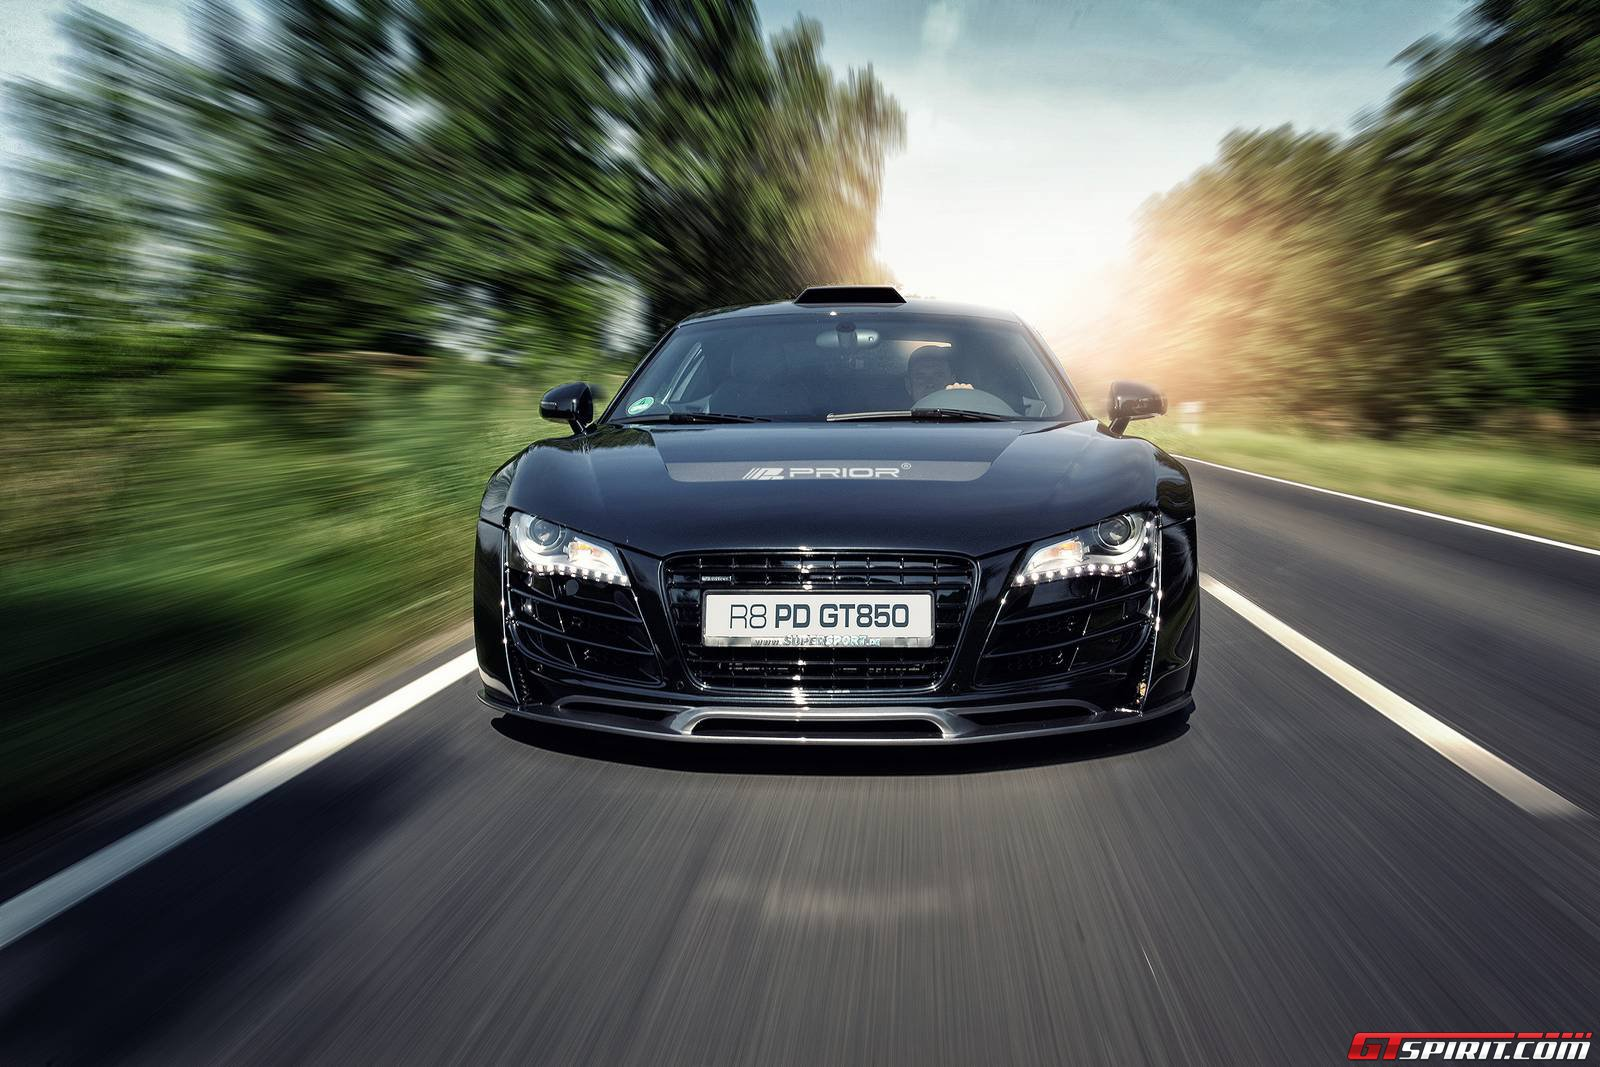 HQ Audi R8 GT 850 Wallpapers | File 287.96Kb